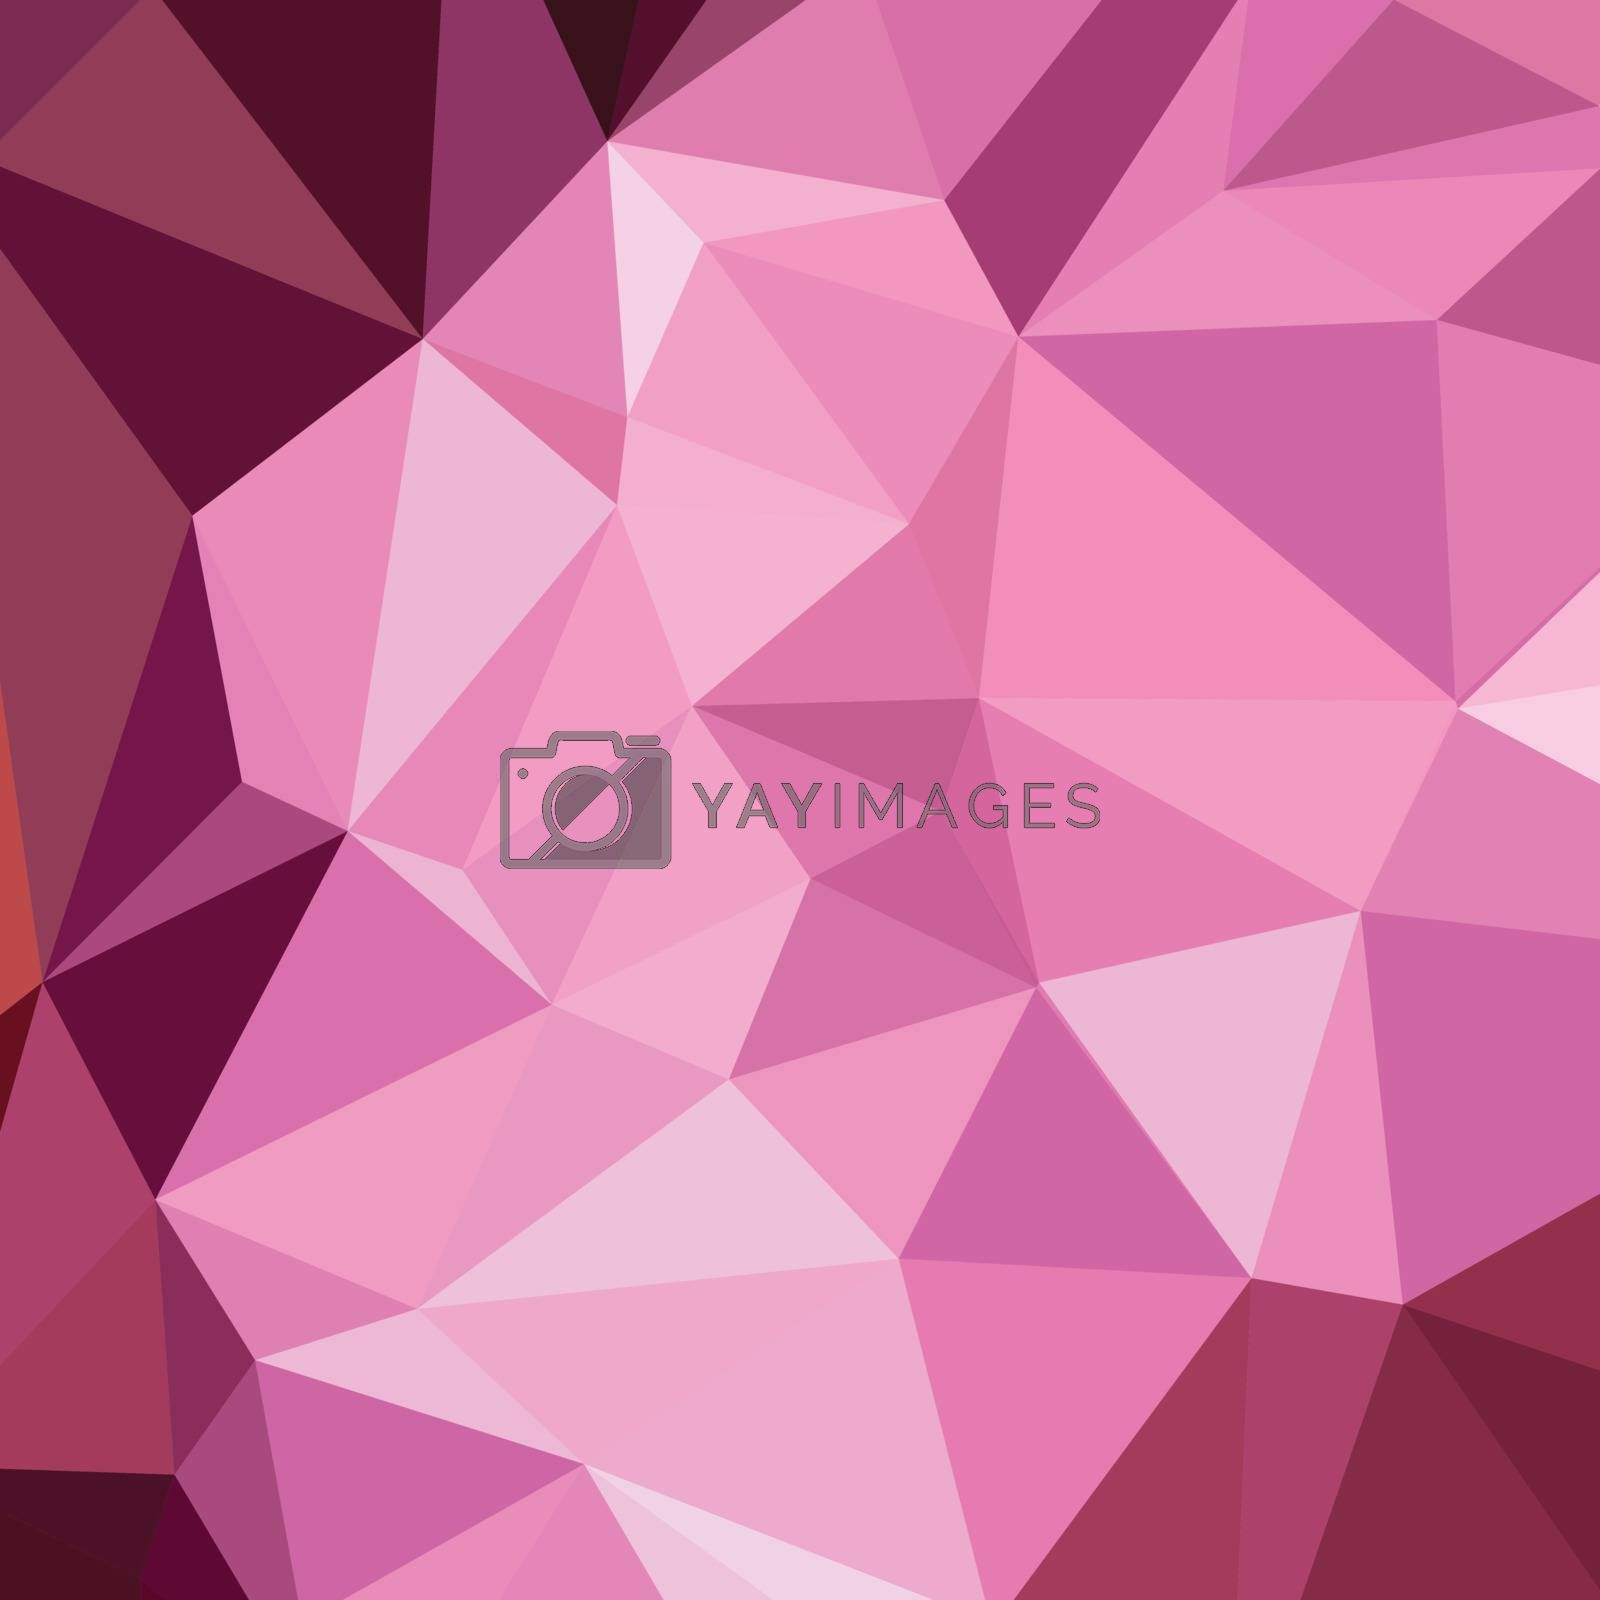 Low polygon style illustration of fandango purple abstract geometric background.